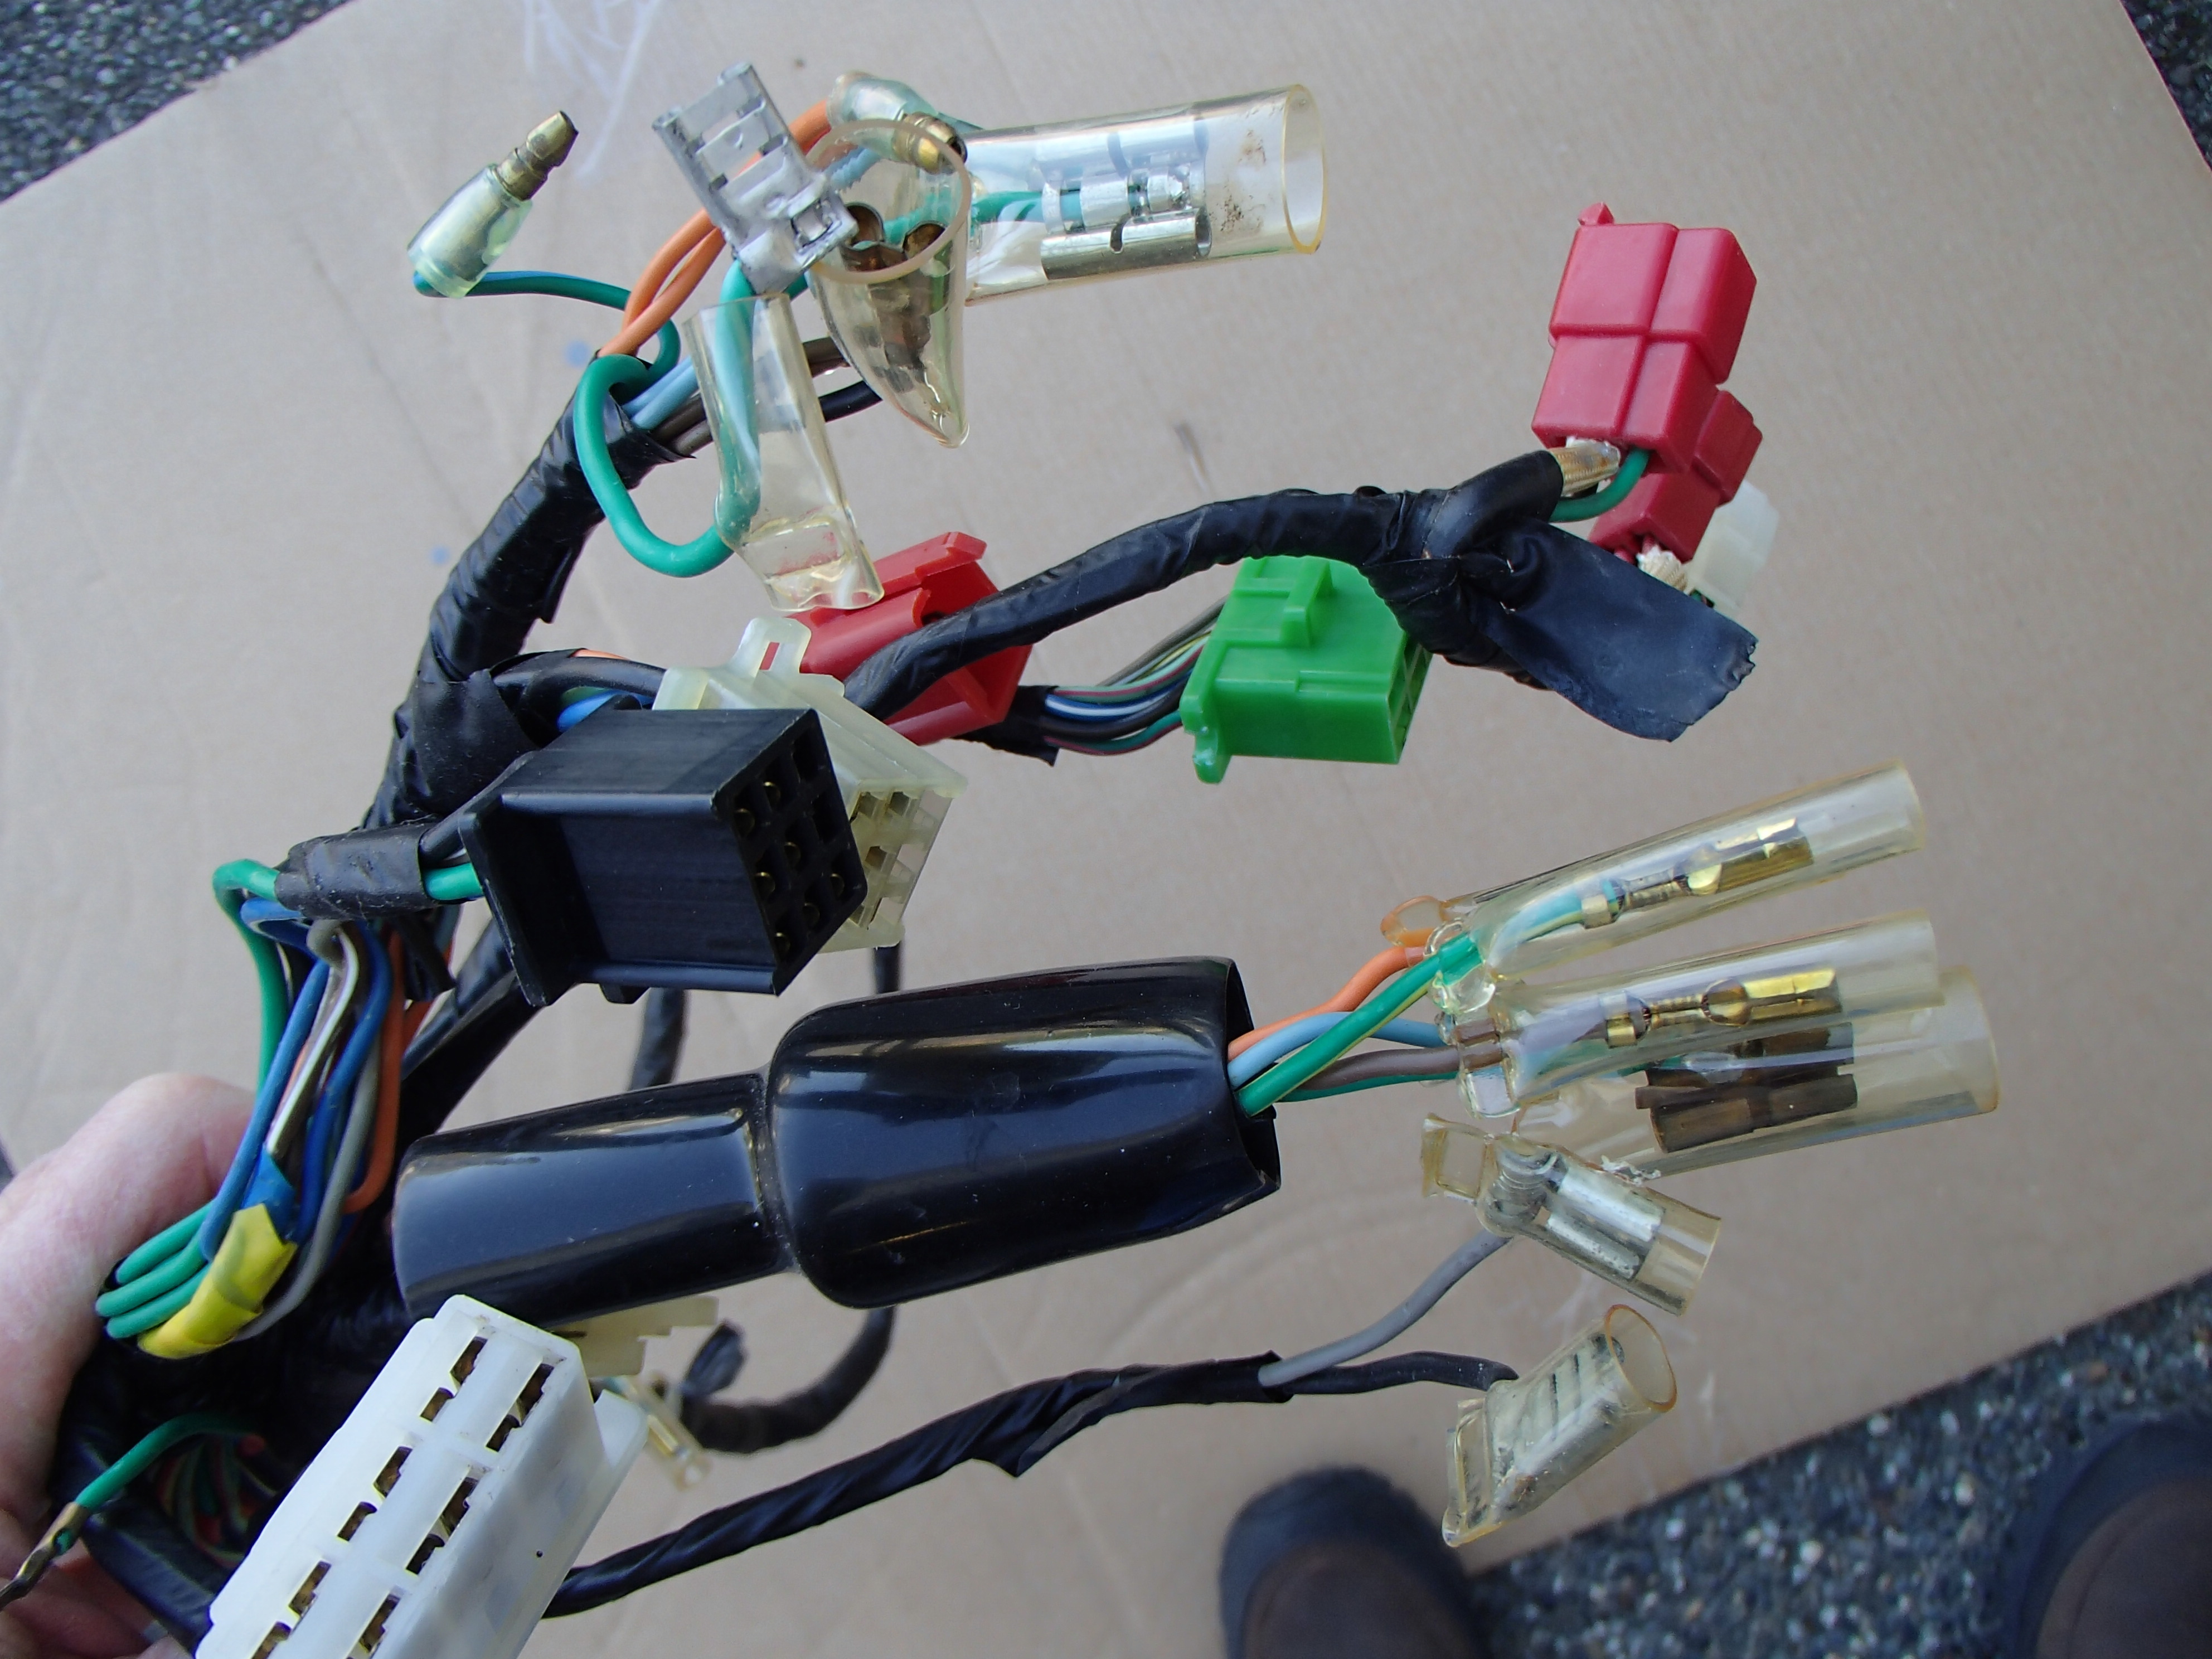 Very clean wiring harness for '79 Deluxe and Custom CX's for sale. $25.00  plus shipping. Please PM me if interested.